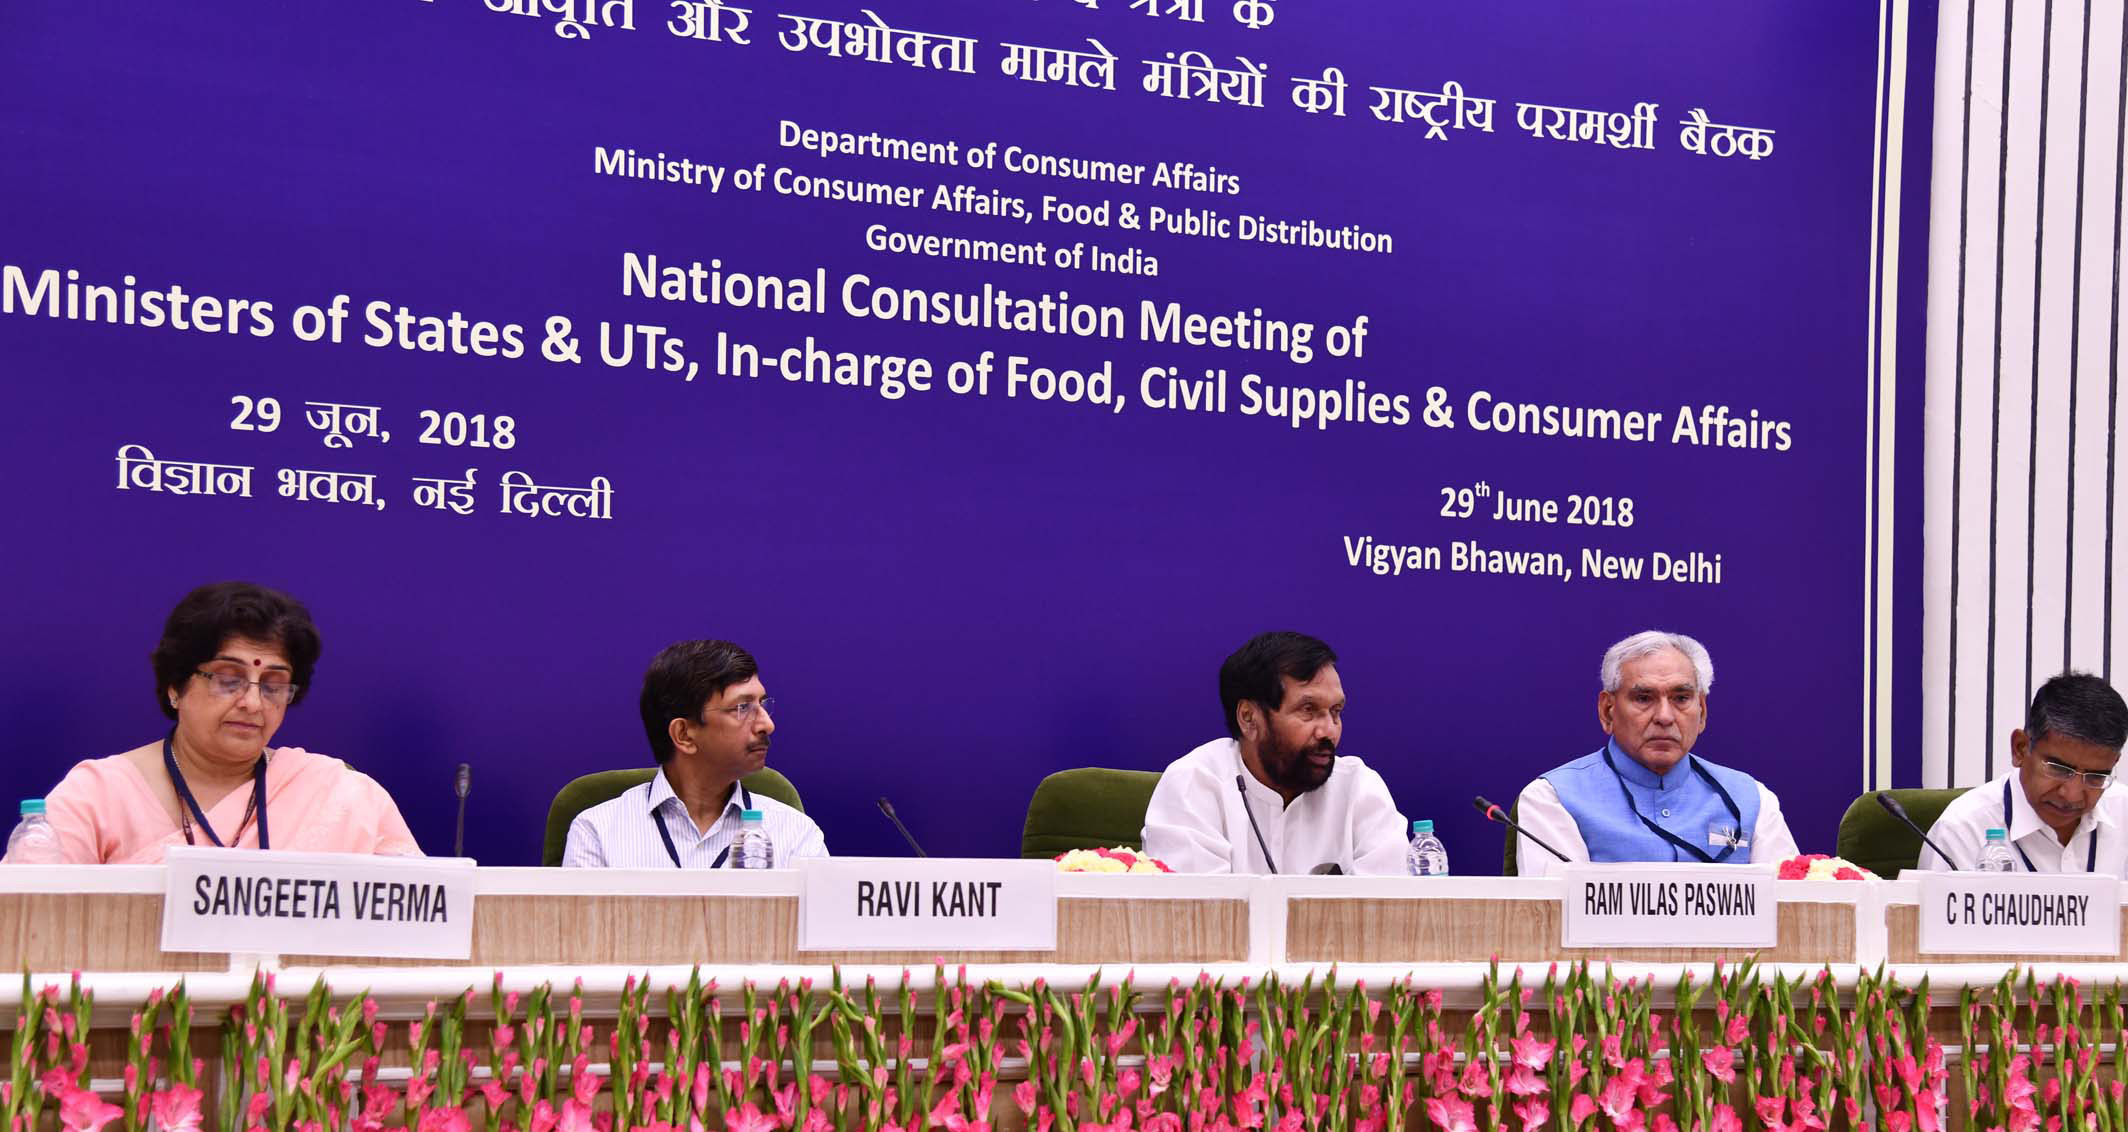 File Ram Vilas Paswan Chairing The 4th National Consultation Meeting Of Ministers Of States Uts In Charge Of Food Civil Supplies And Consumer Affairs In New Delhi 1 Jpg Wikimedia Commons